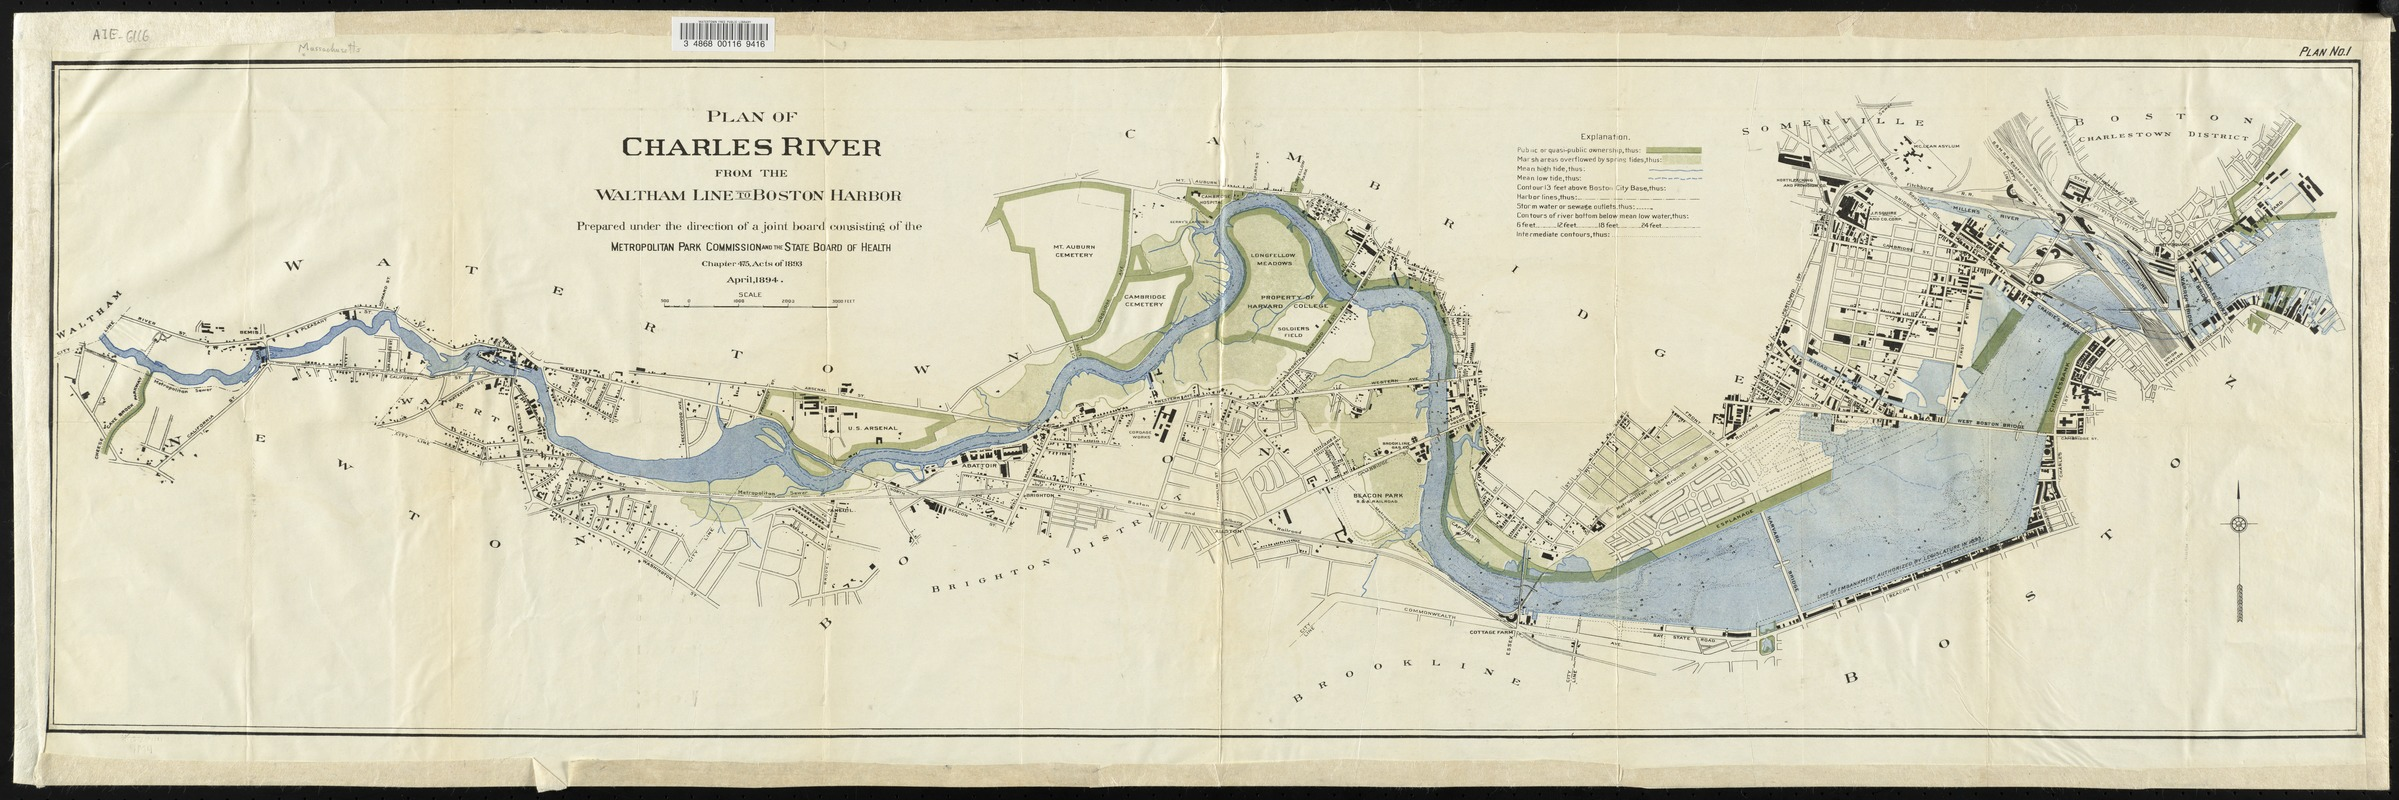 Plan of Charles River from the Waltham line to Boston Harbor